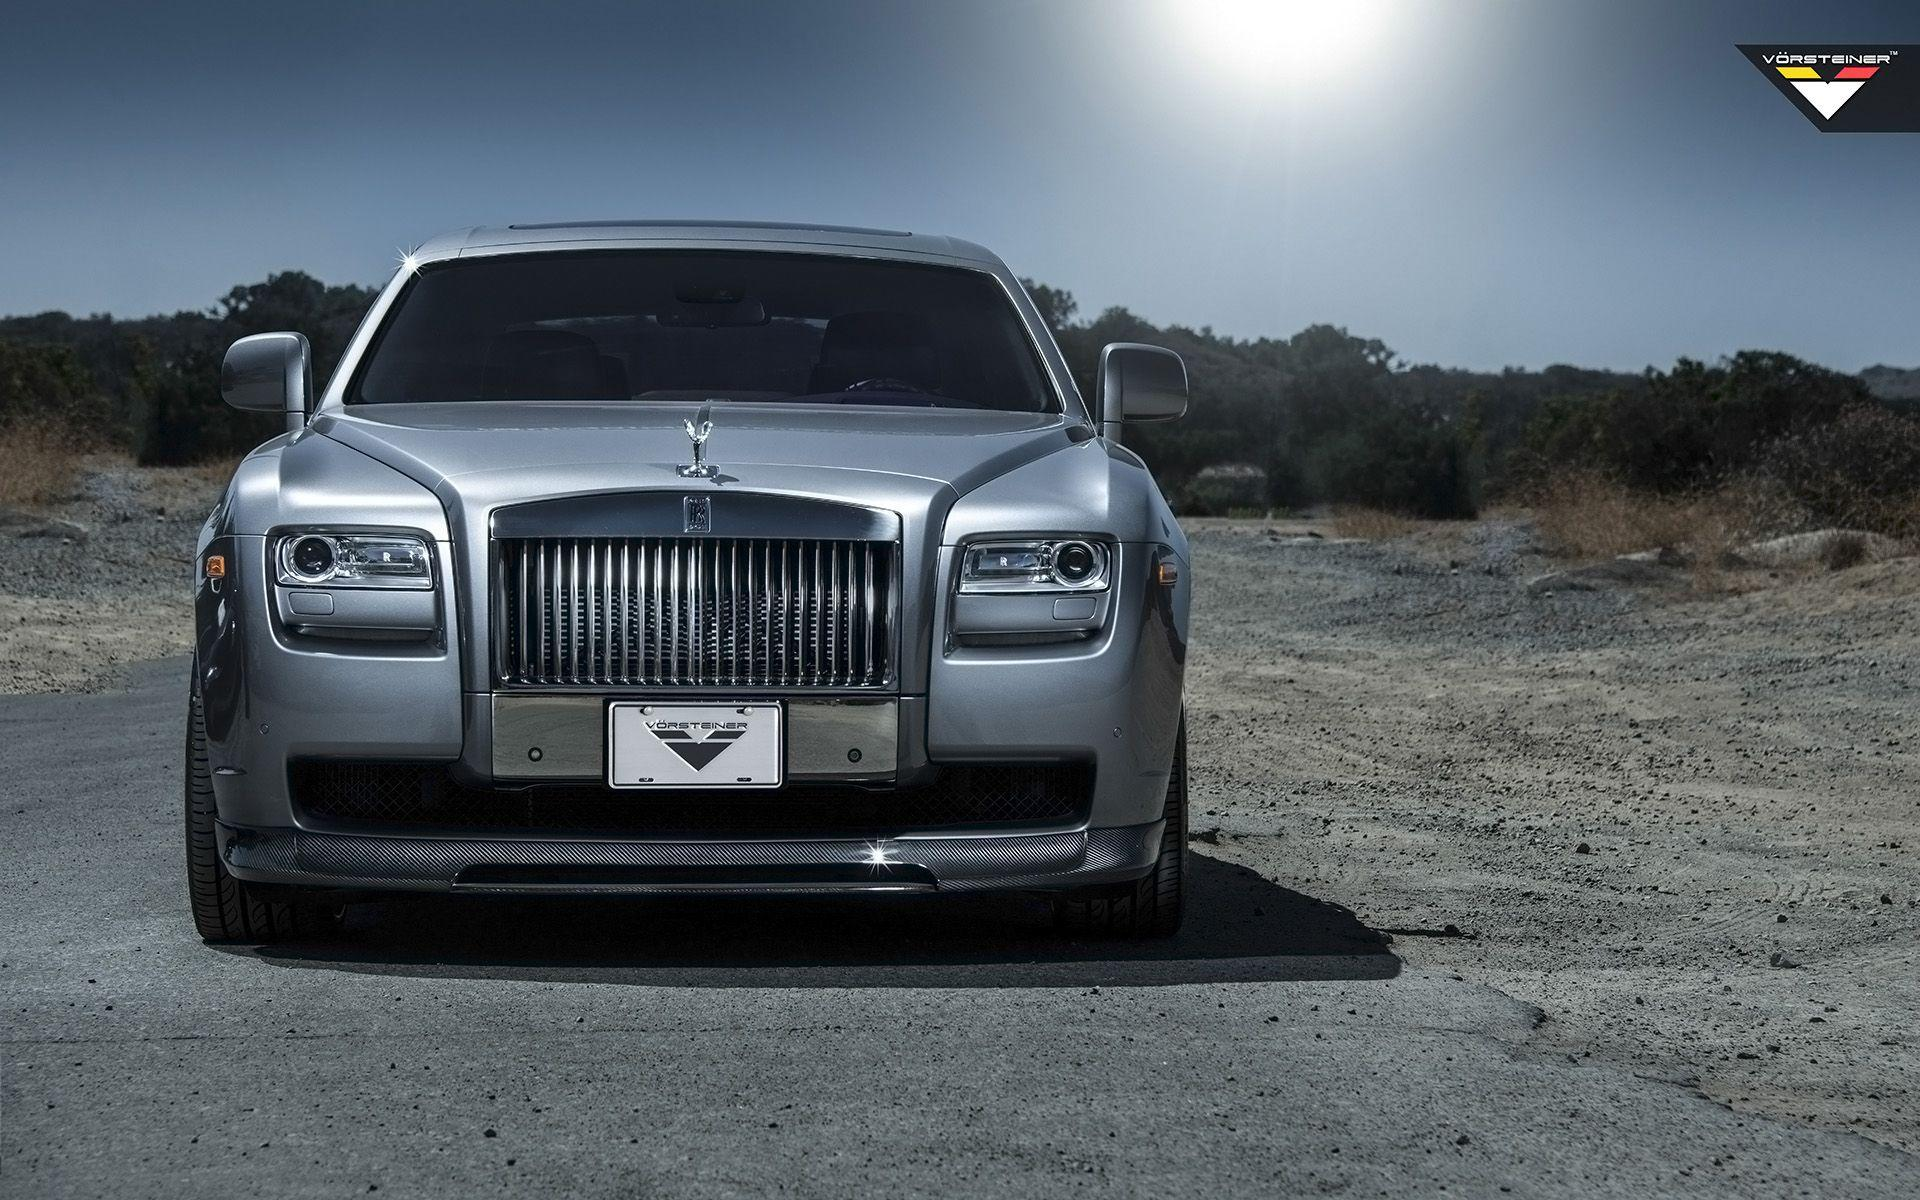 2014 Vorsteiner Rolls Royce Ghost Silver Wallpaper | HD Car Wallpapers